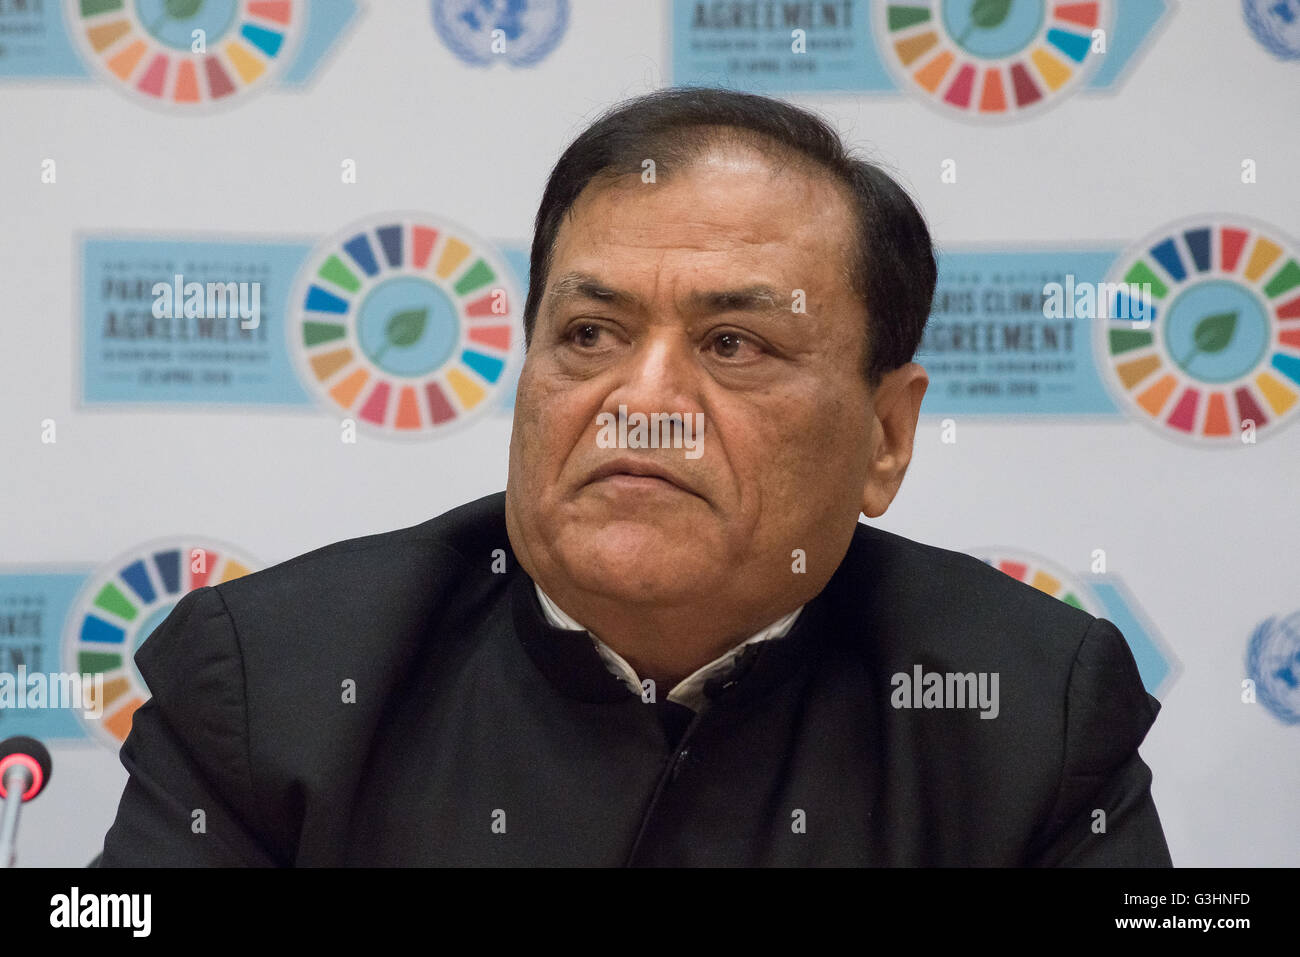 New York, United States. 22nd Apr, 2016. Mahendra Singhi, CEO of India's Dalmia Cement, speaks to the press. Following the opening for signature of the Global Climate Agreement at UN Headquarters in New York City, UN Global Compact Executive Director Lise Kingo and three representatives from the business and finance sectors held a press conference to discuss the ways in which financing and investment can contribute to achieving the Sustainable Development Goals framework. © Albin Lohr-Jones/Pacific Press/Alamy Live News Stock Photo